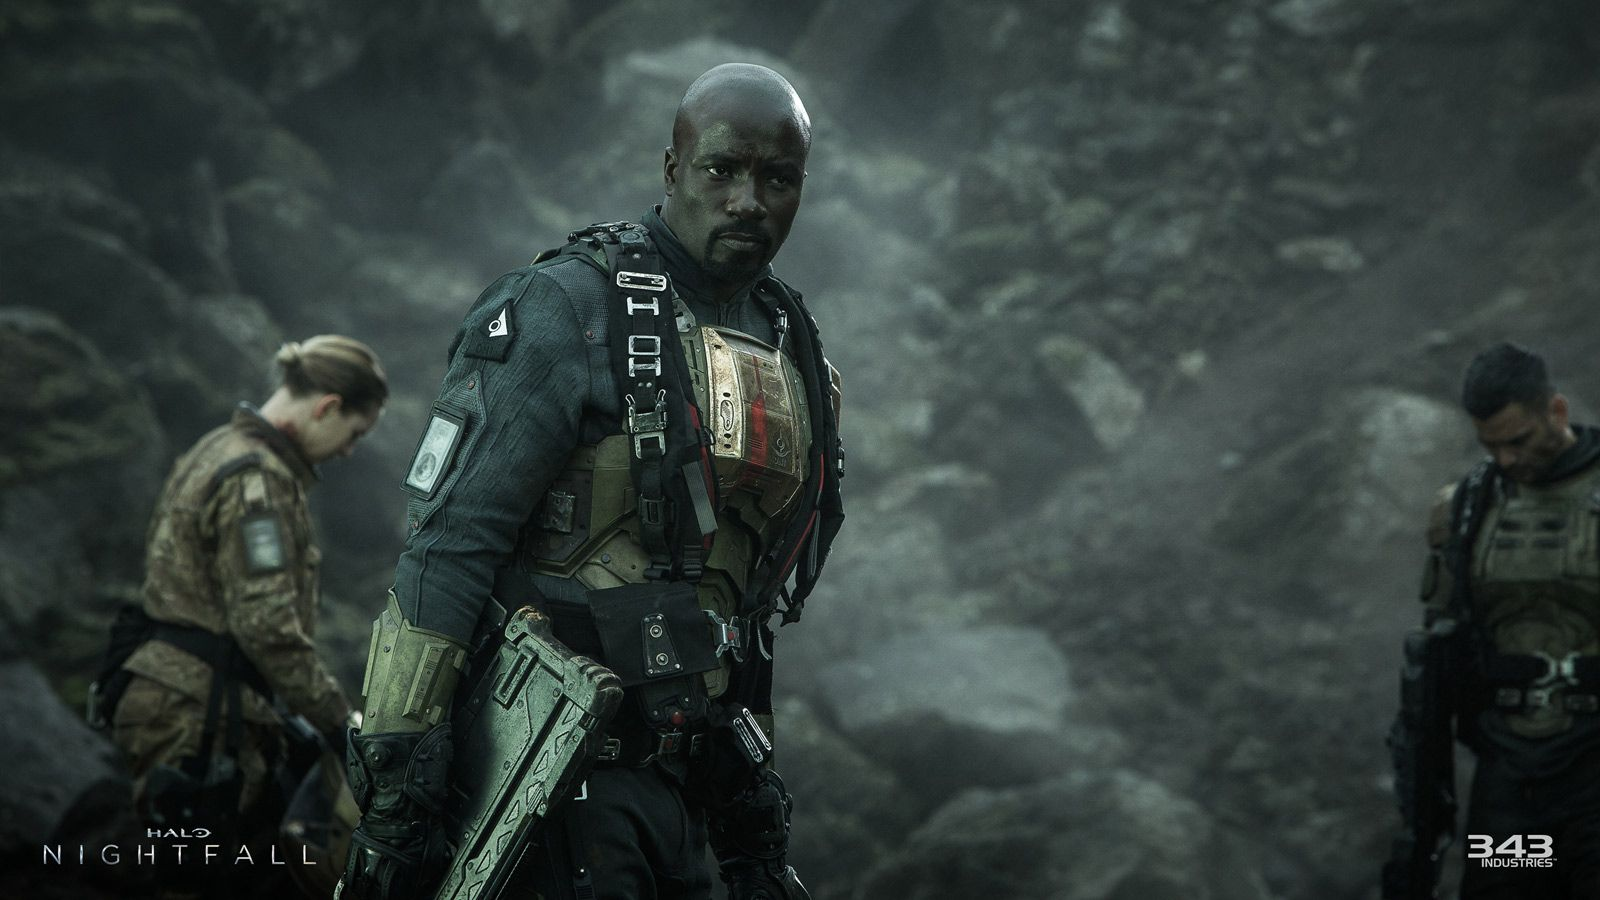 Watch The Entire Halo Nightfall Panel From Comic Con Polygon